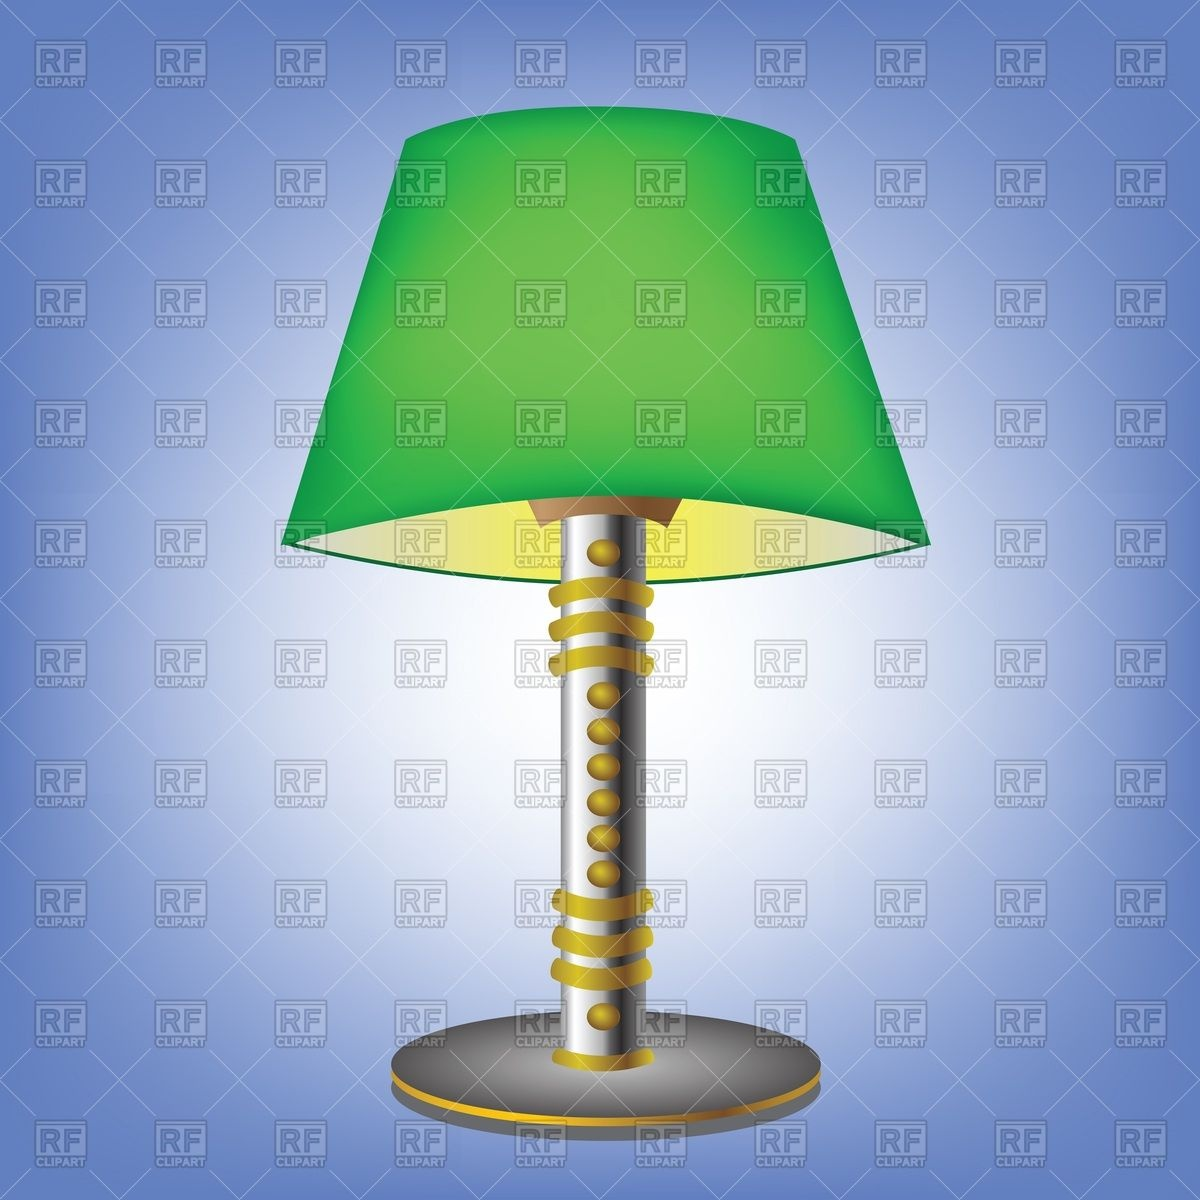 Decorative table lamp with green lampshade Vector Image #39587.